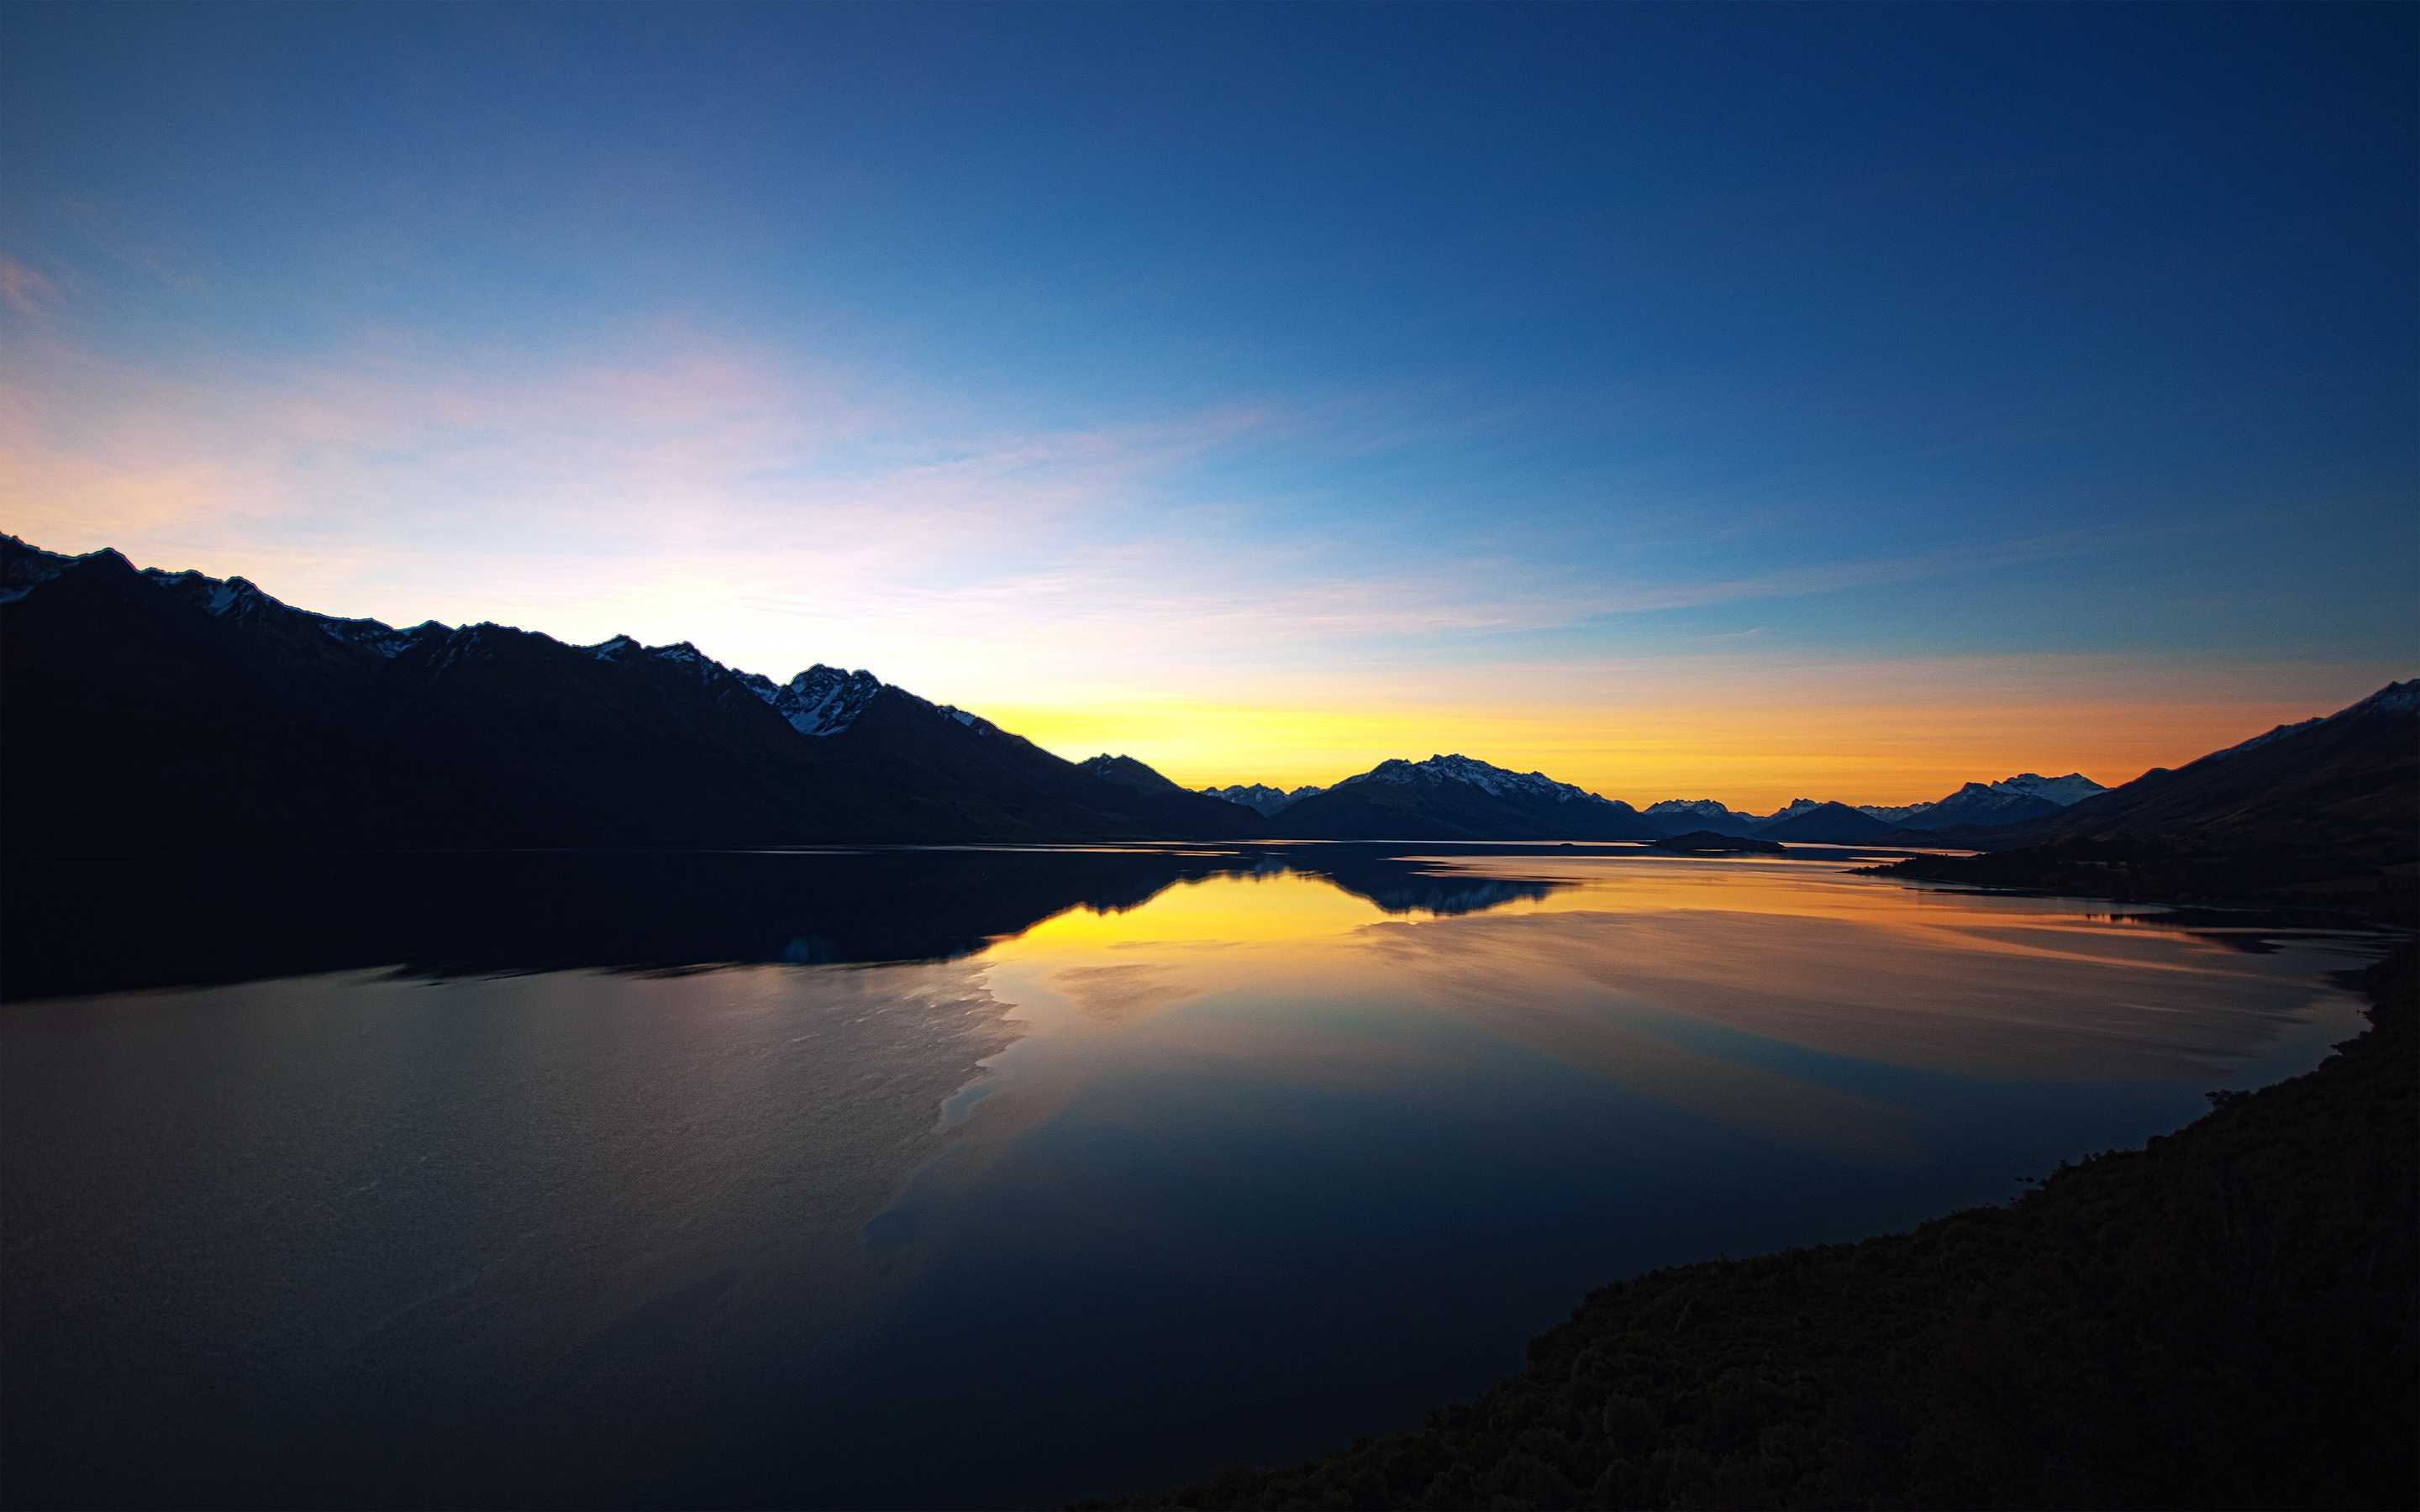 Beautiful Lake Sunset Wallpapers in jpg format for free download